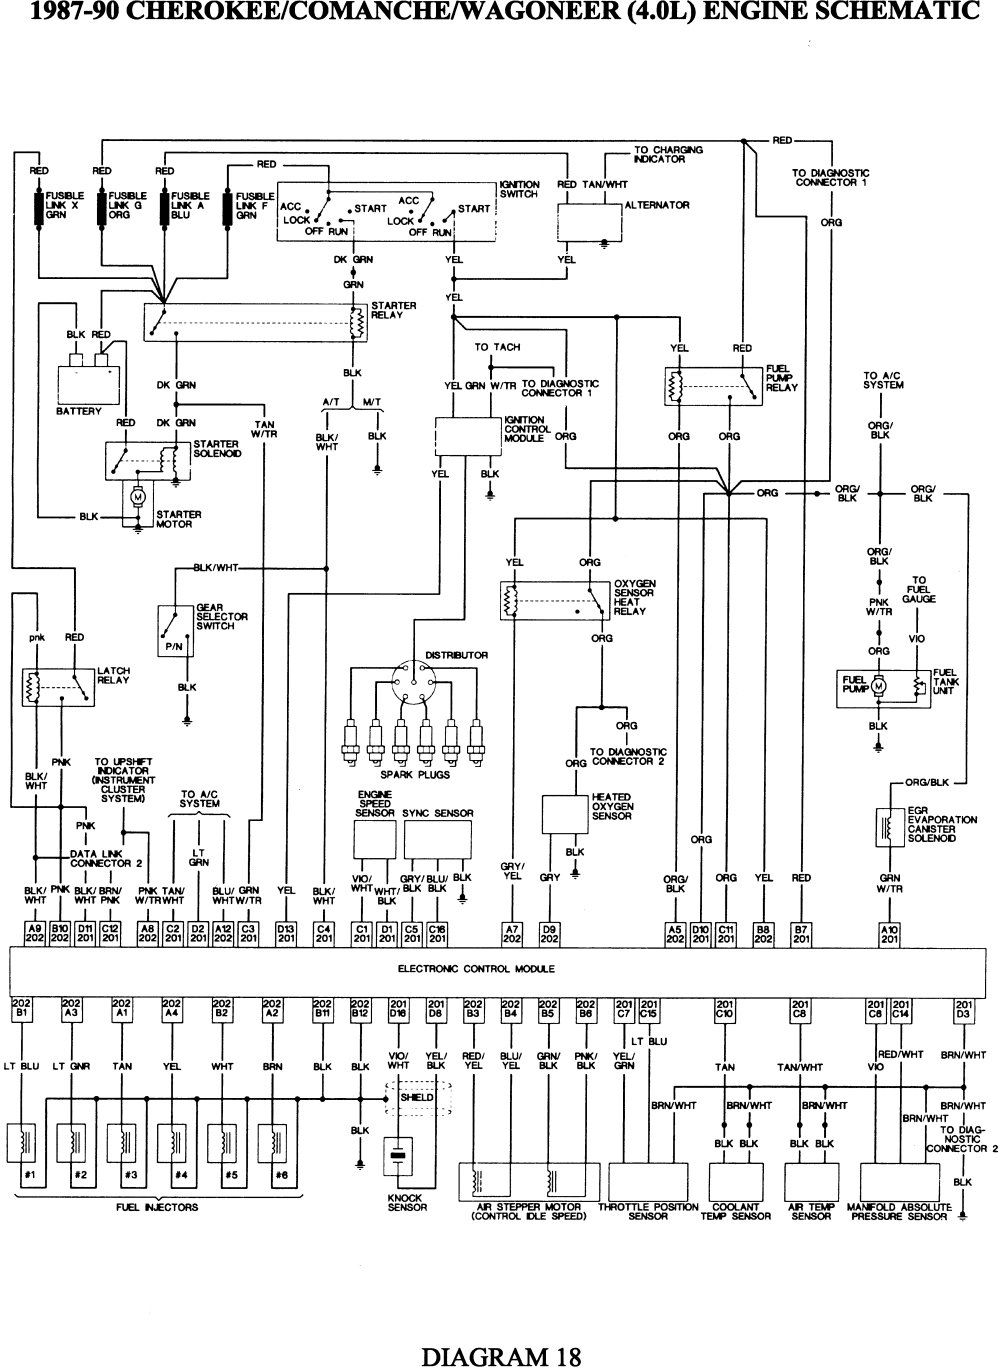 medium resolution of 2001 jeep cherokee engine wiring diagram wiring diagram name wiring diagram for jeep cherokee wiring diagram for jeep cherokee